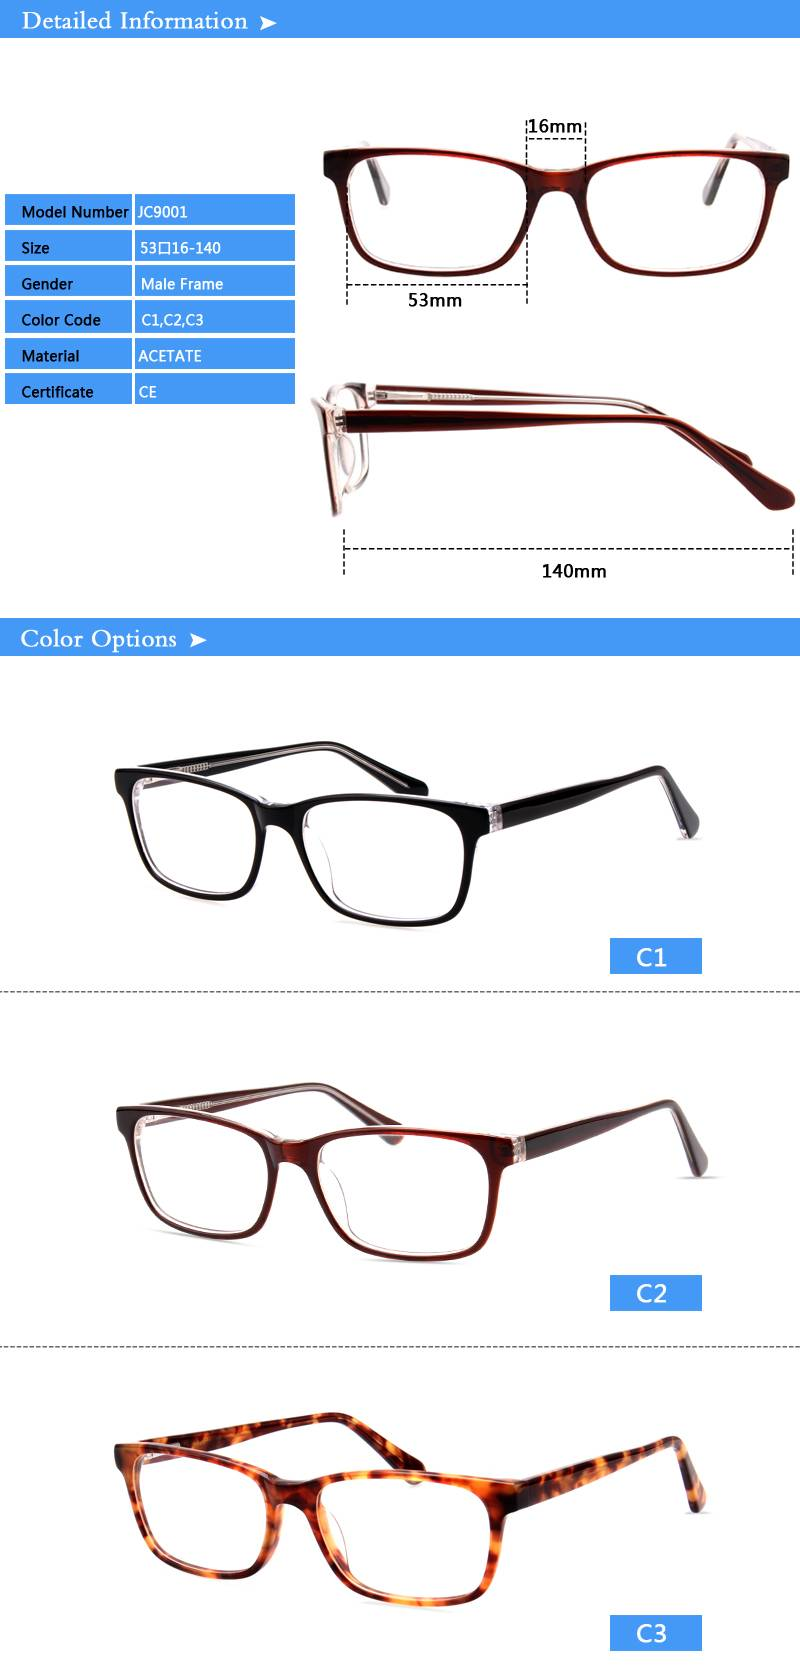 Fashion design acetate eyewear optical frame JC9001 ready in stock